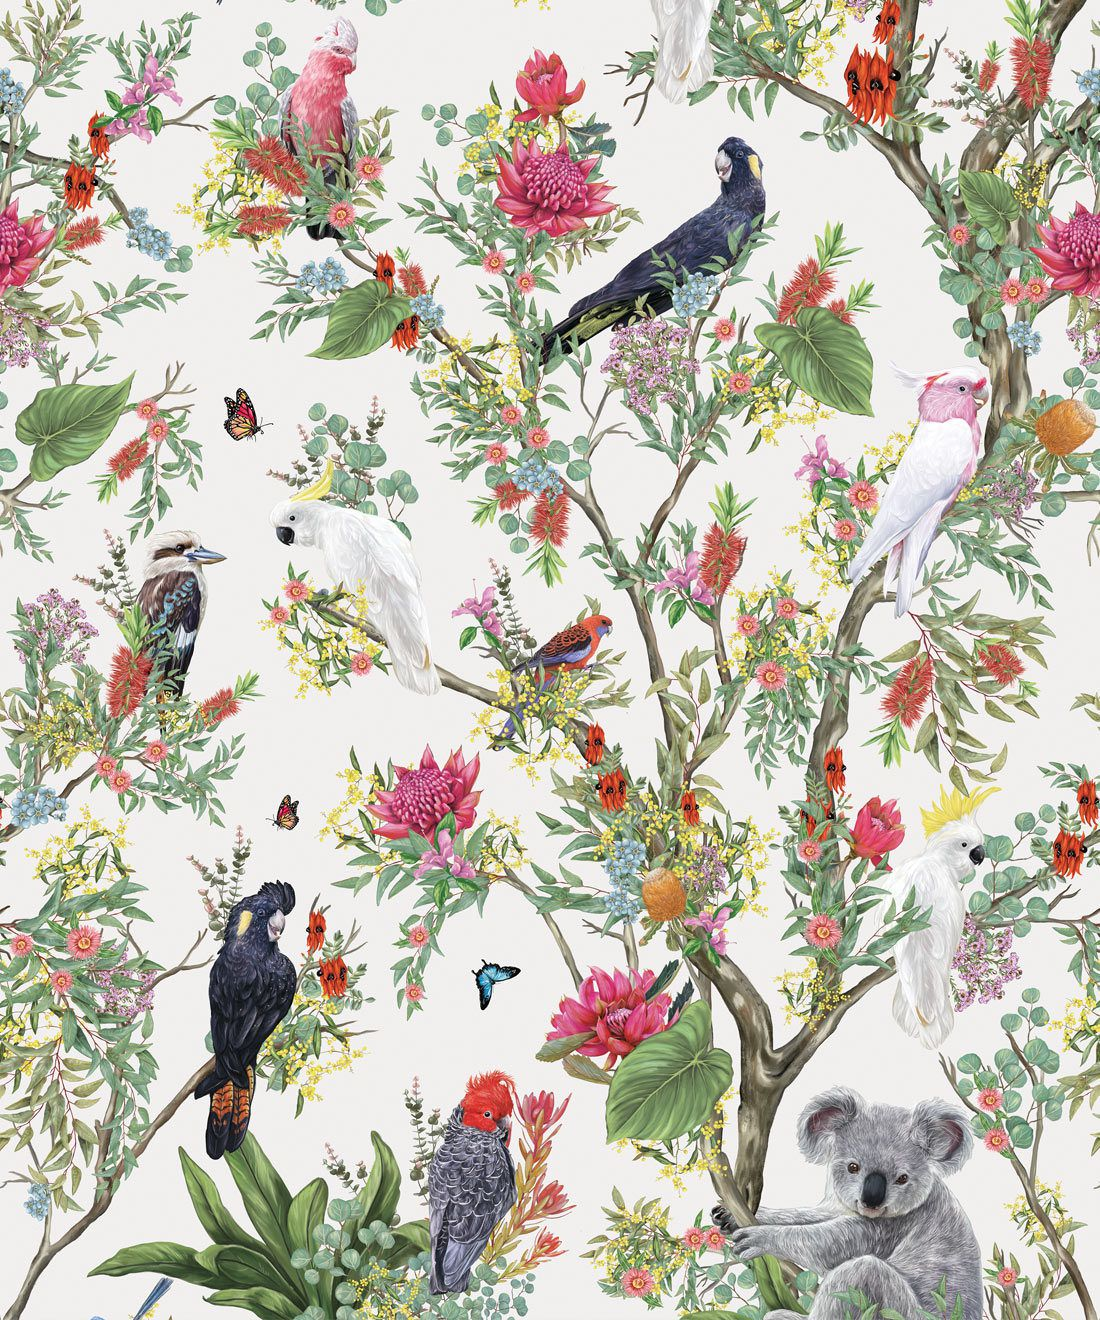 Australia Wallpaper • Cockatoos, Koalas, Parrots, Finches • Milton & King USA • Canvas Wallpaper Swatch